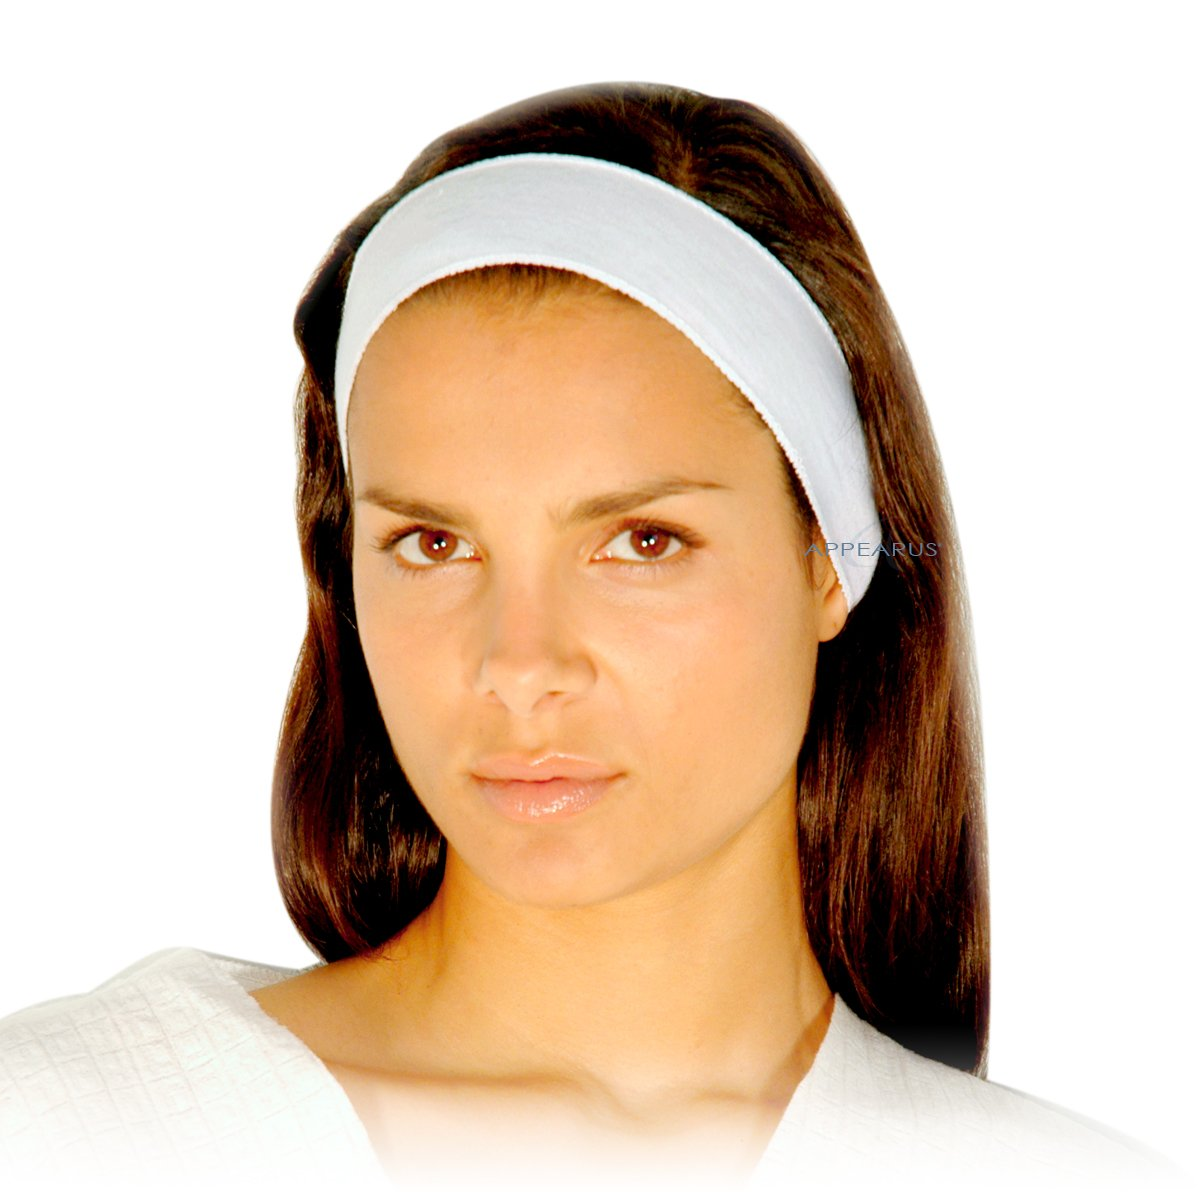 Appearus Disposable Spa Headband (48 Count)